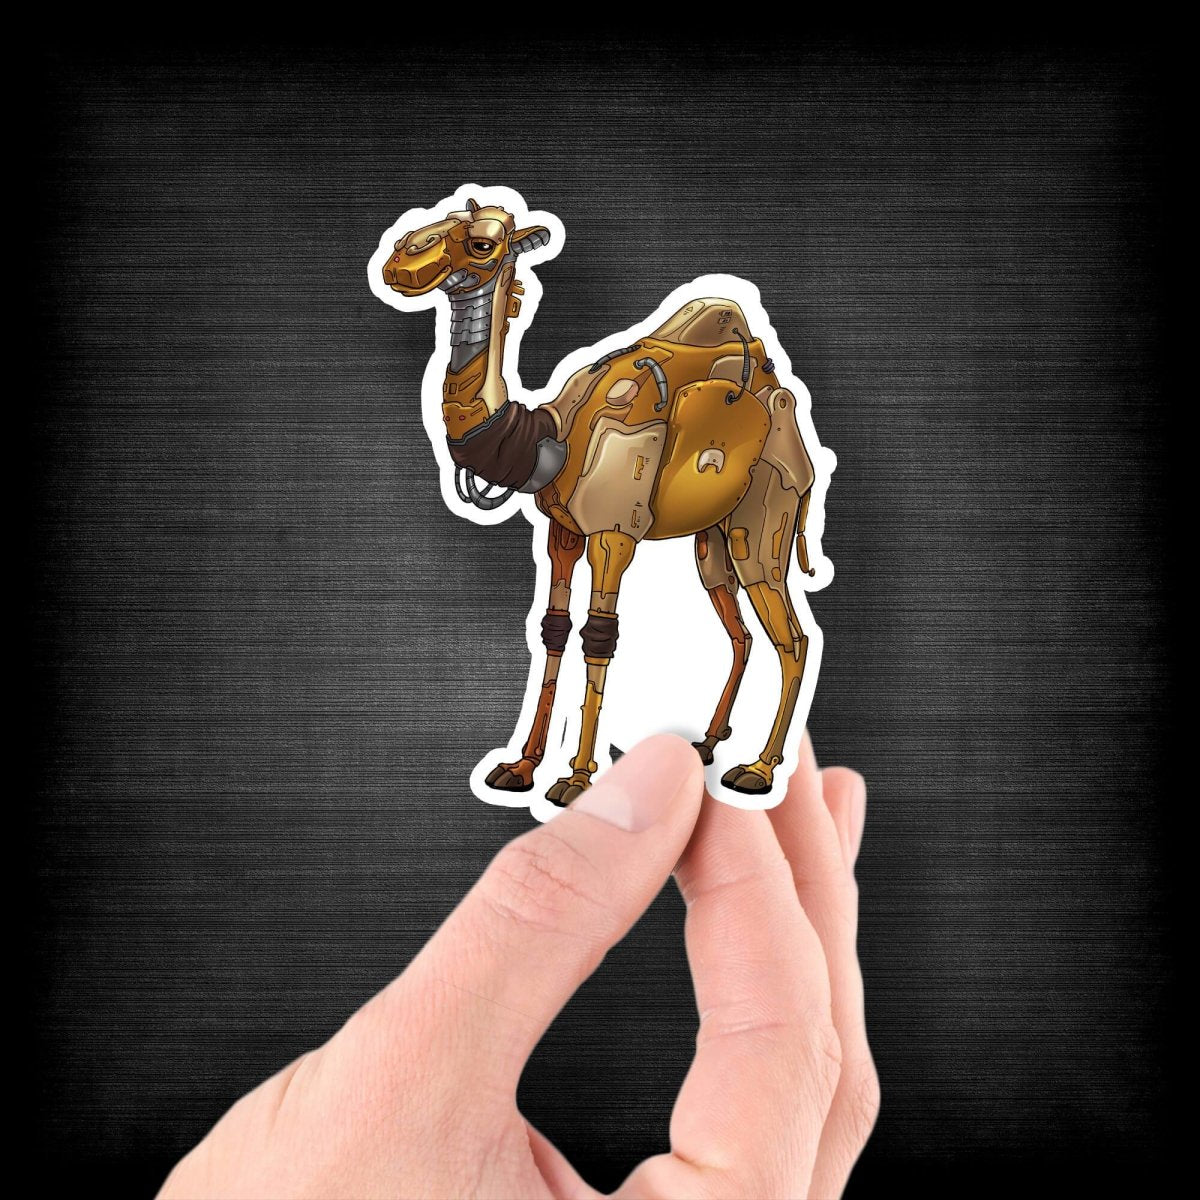 Camel Robot - Vinyl Sticker - Dan Pearce Sticker Shop